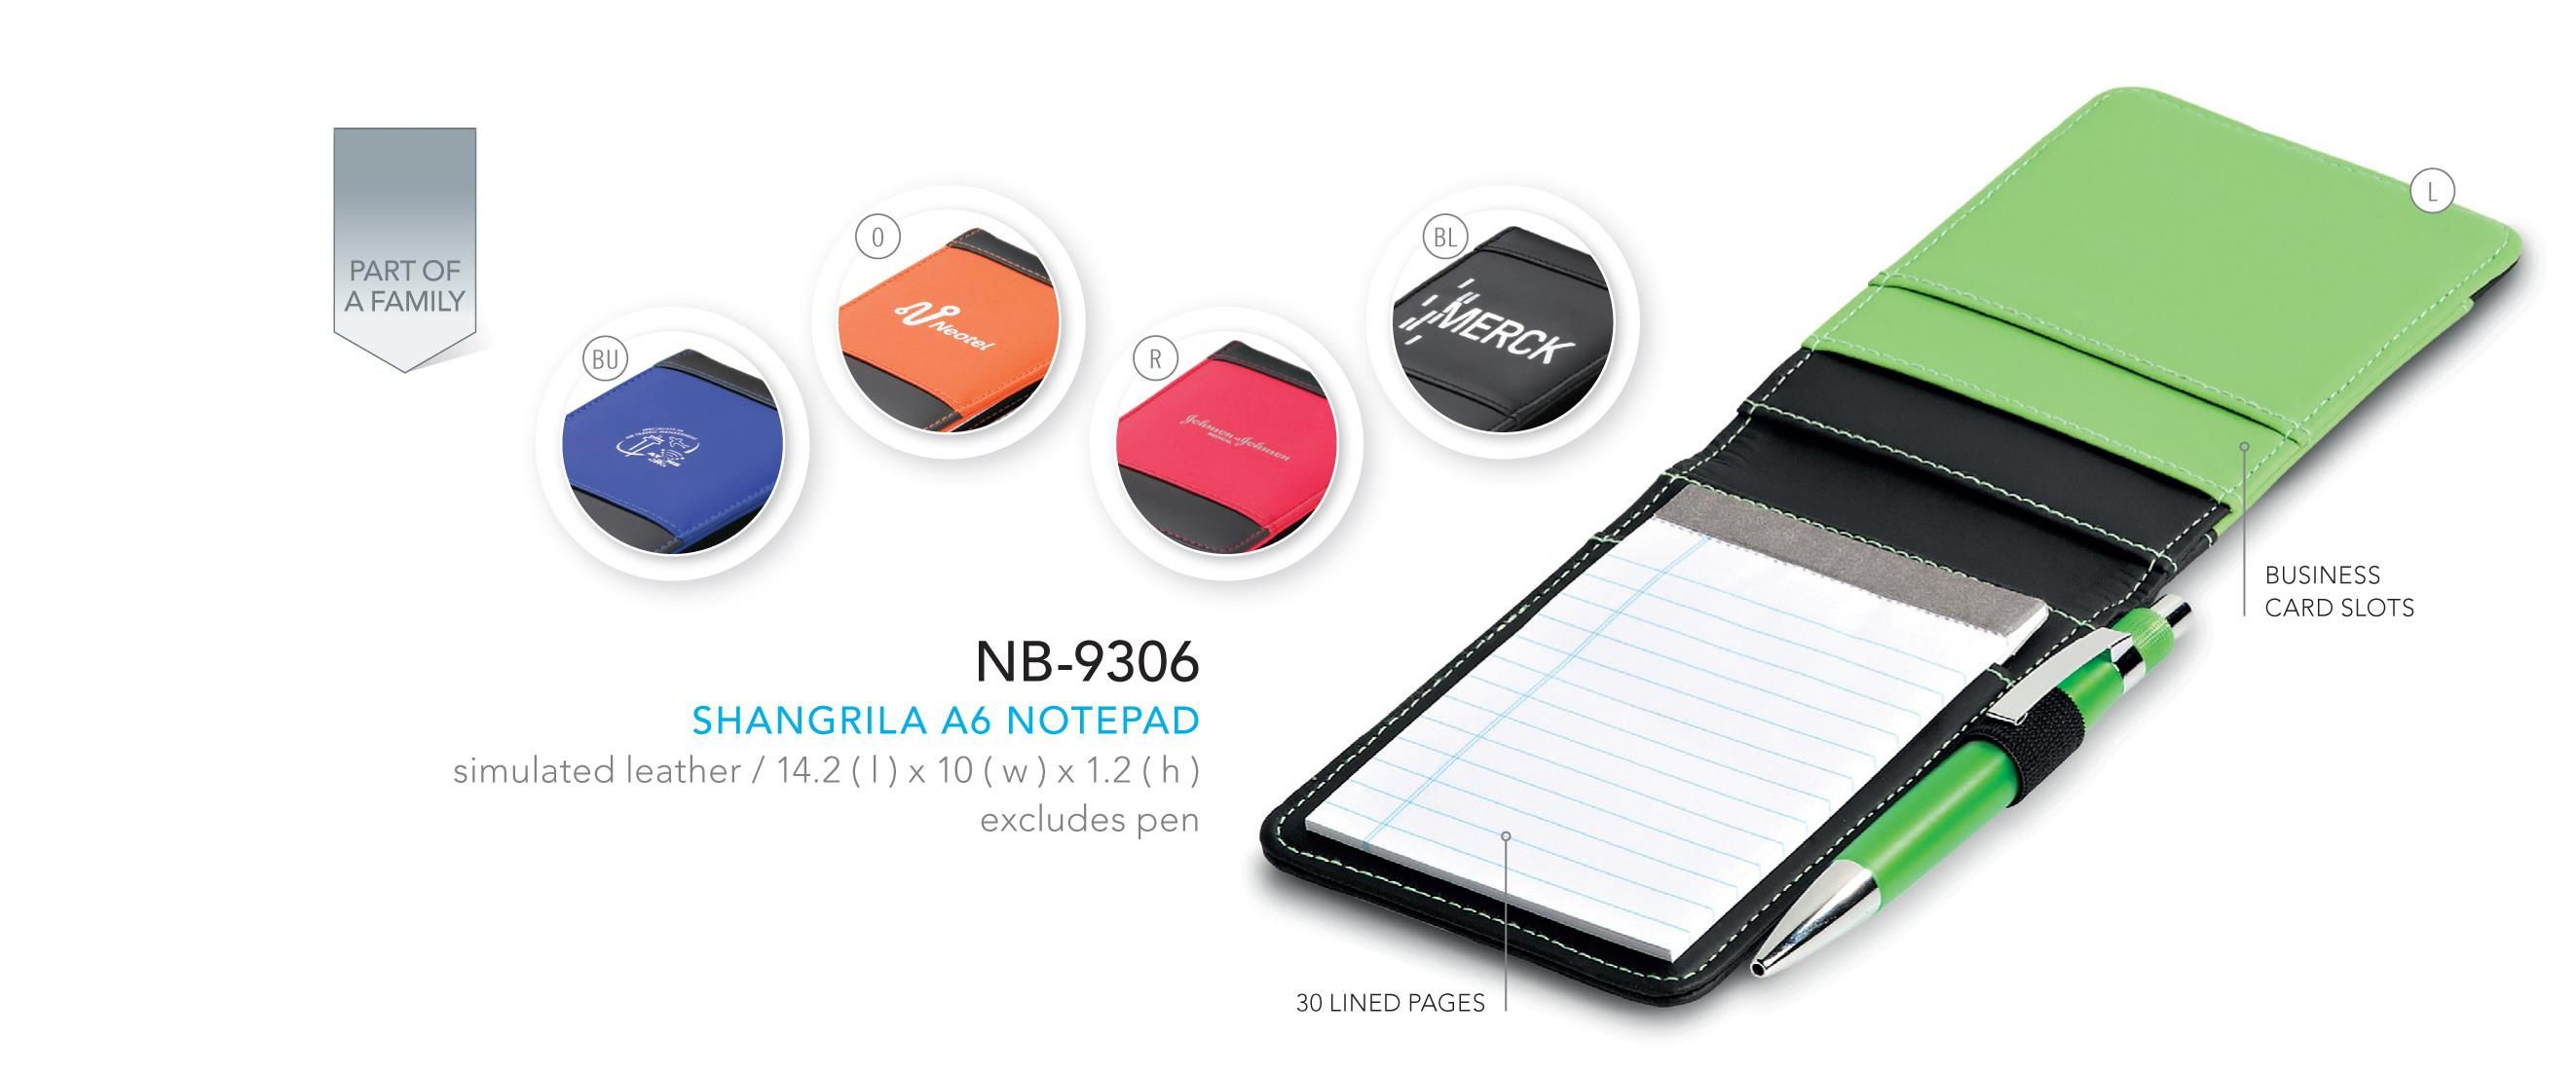 Shangrila A6 Notepad Corporate gifts, Gift solutions, Gifts